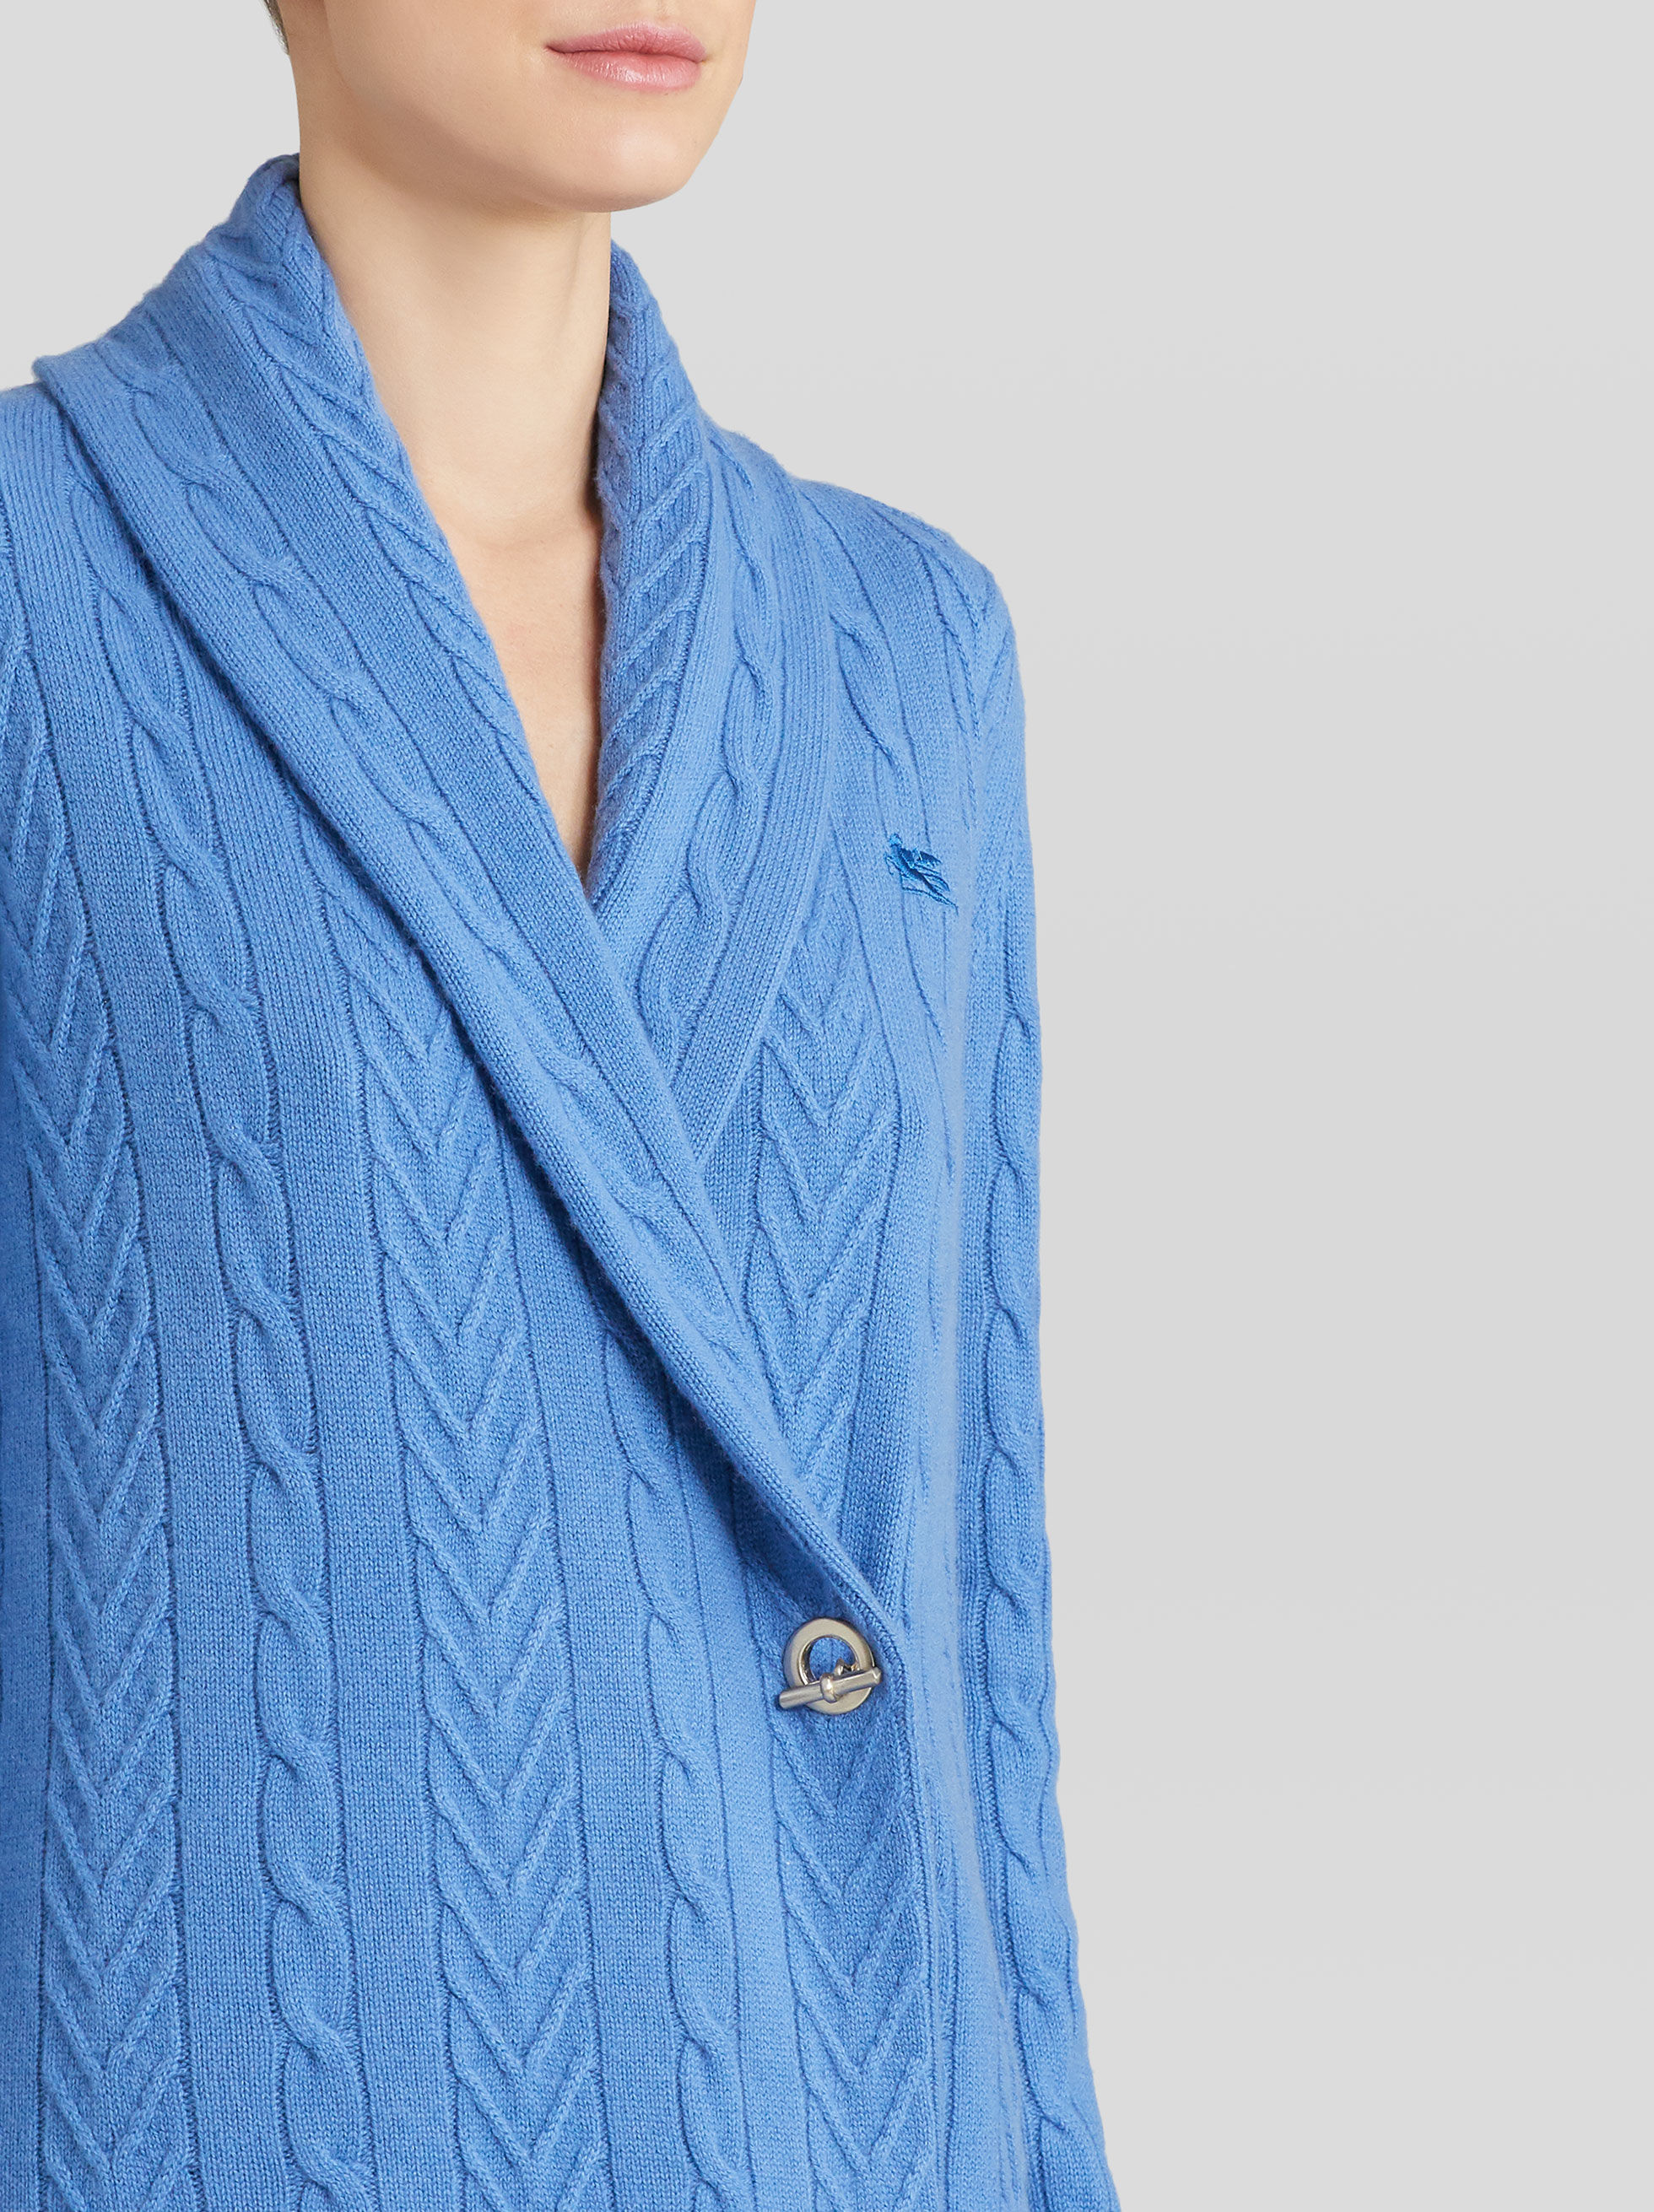 CARDIGAN WITH CABLE AND CHEVRON PATTERN